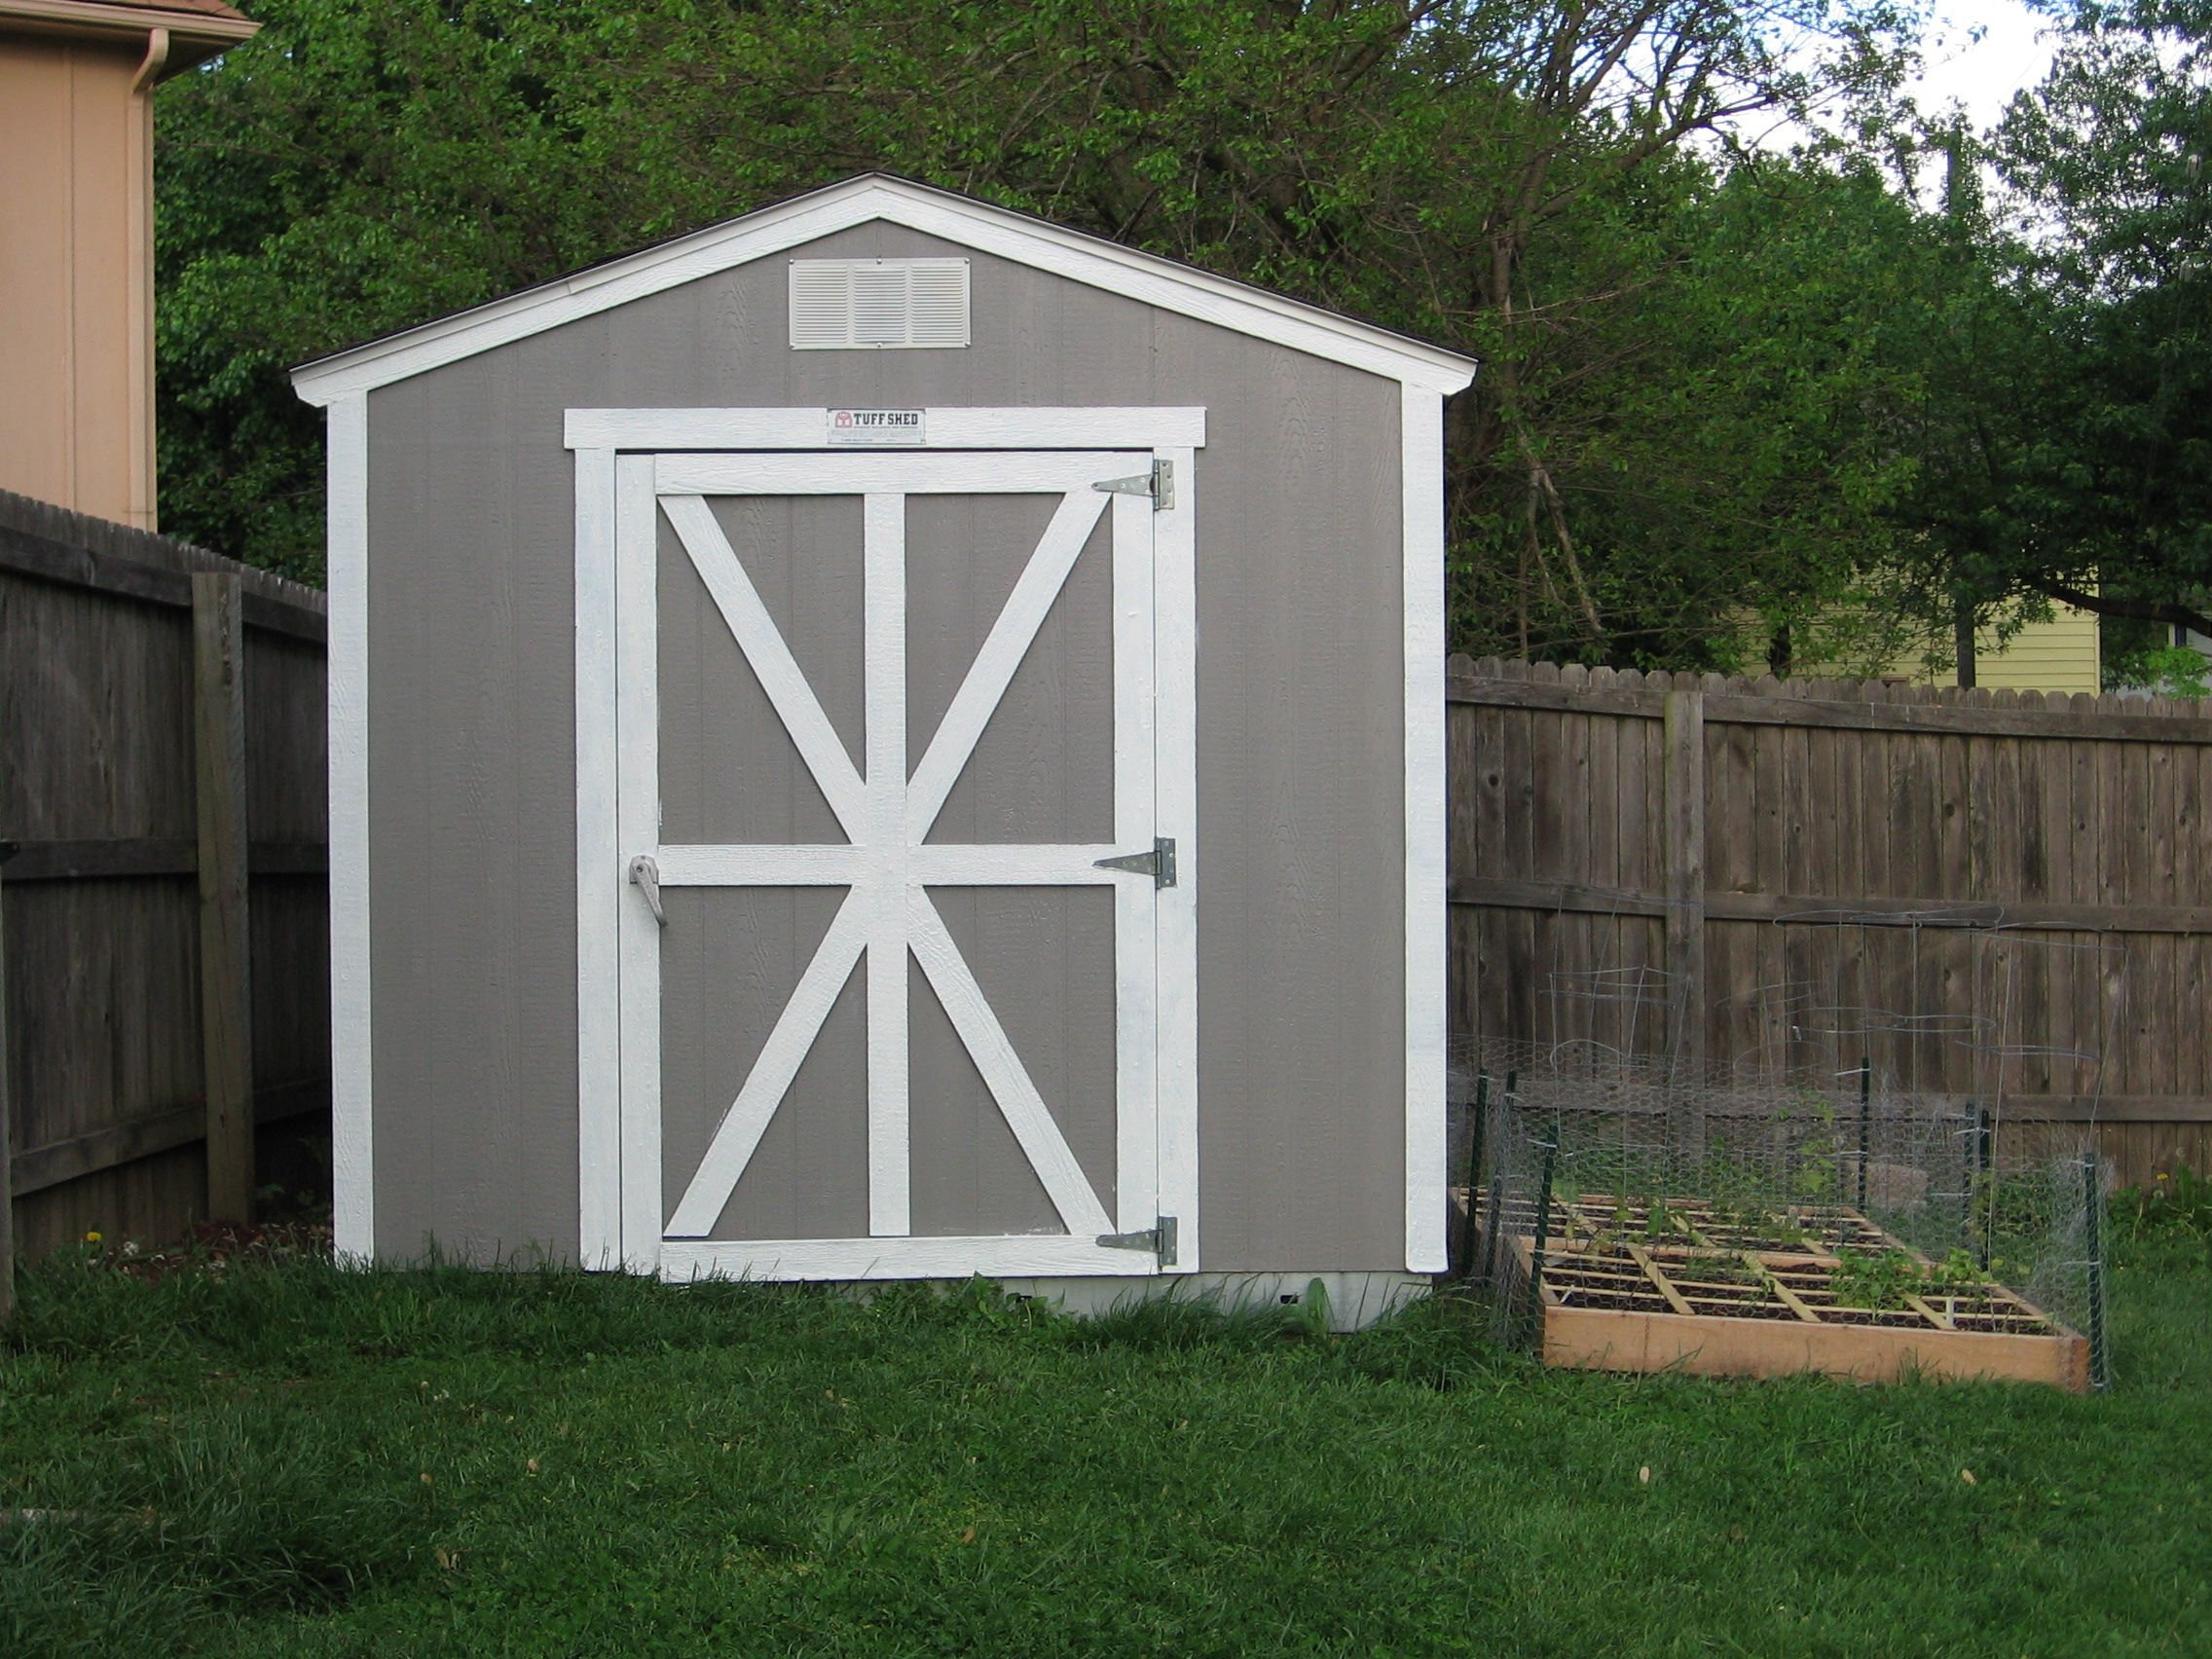 Barn shed door panel ideas nice gray wooden small shed ideas with single large door with - Plans for garden sheds decor ...